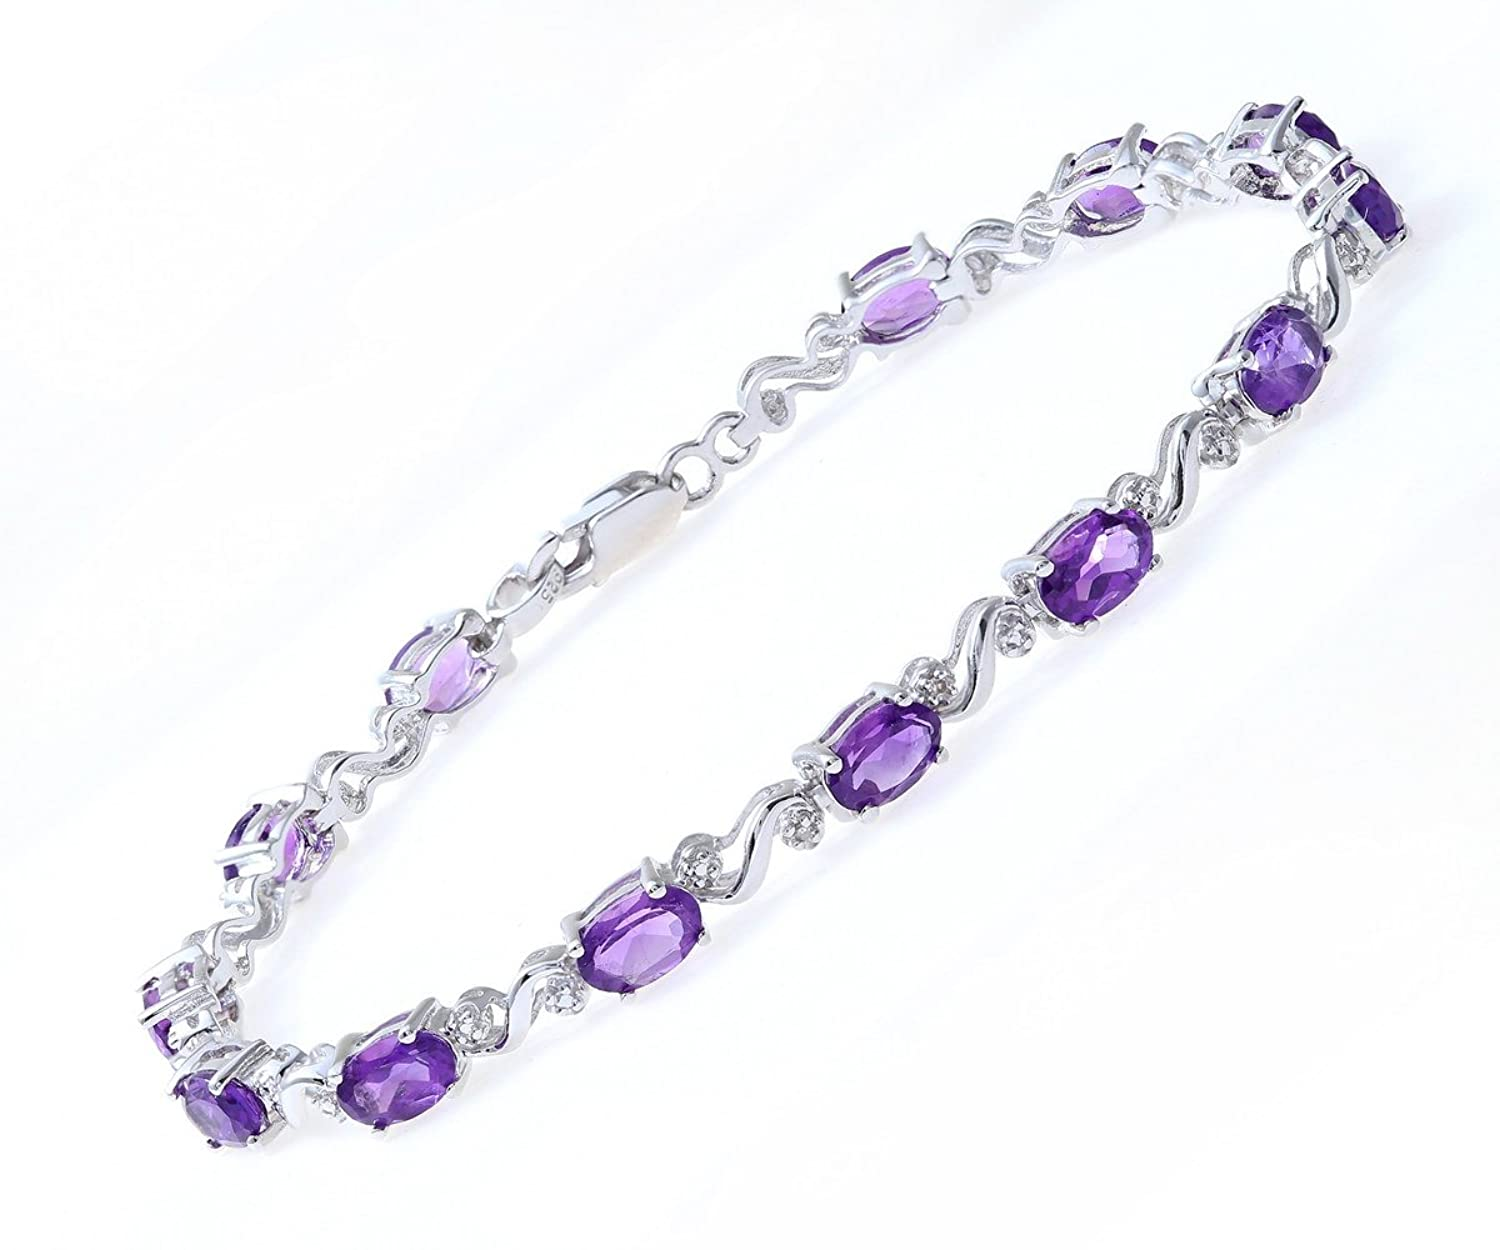 bracelet stone purple lightbox product in disciple clothed